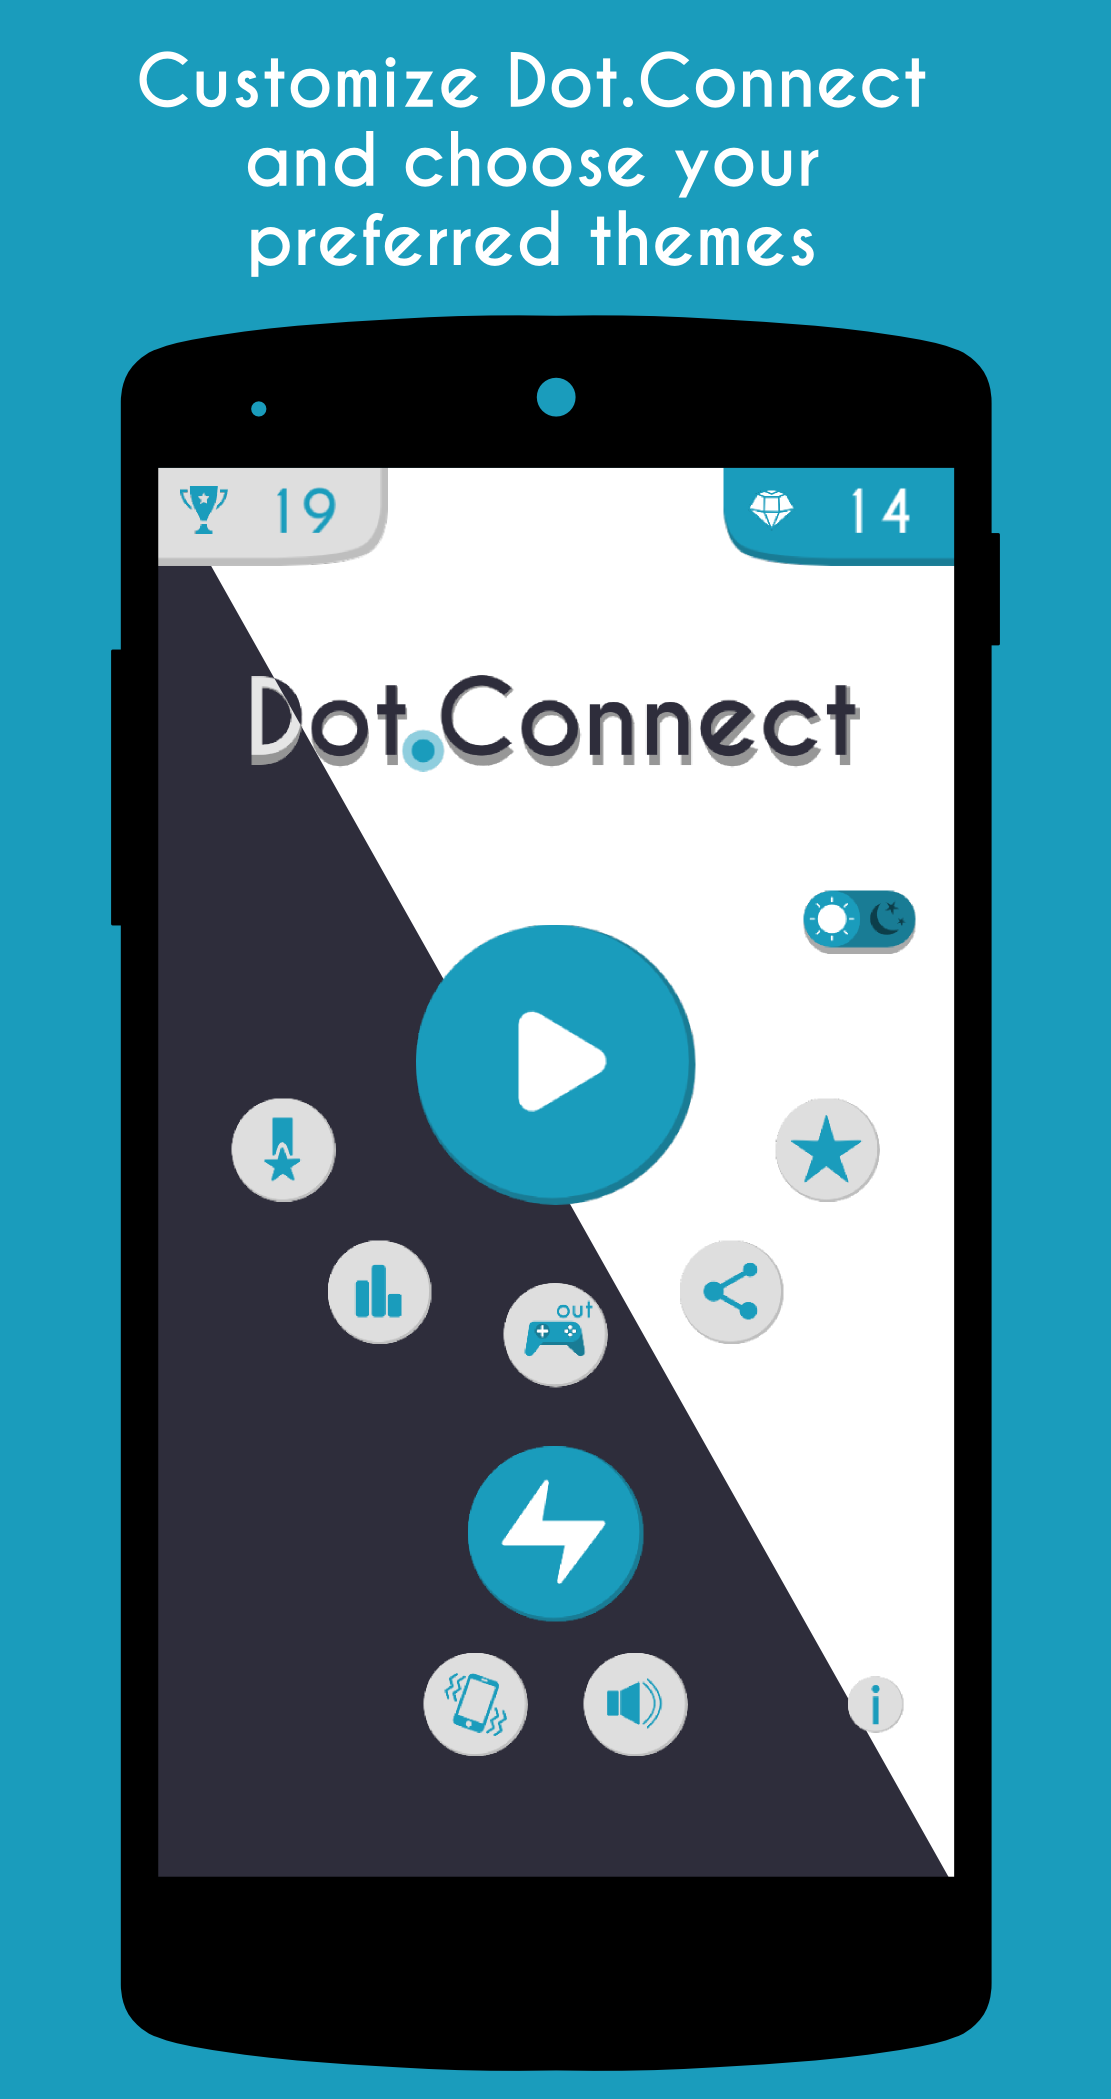 Dot.Connect